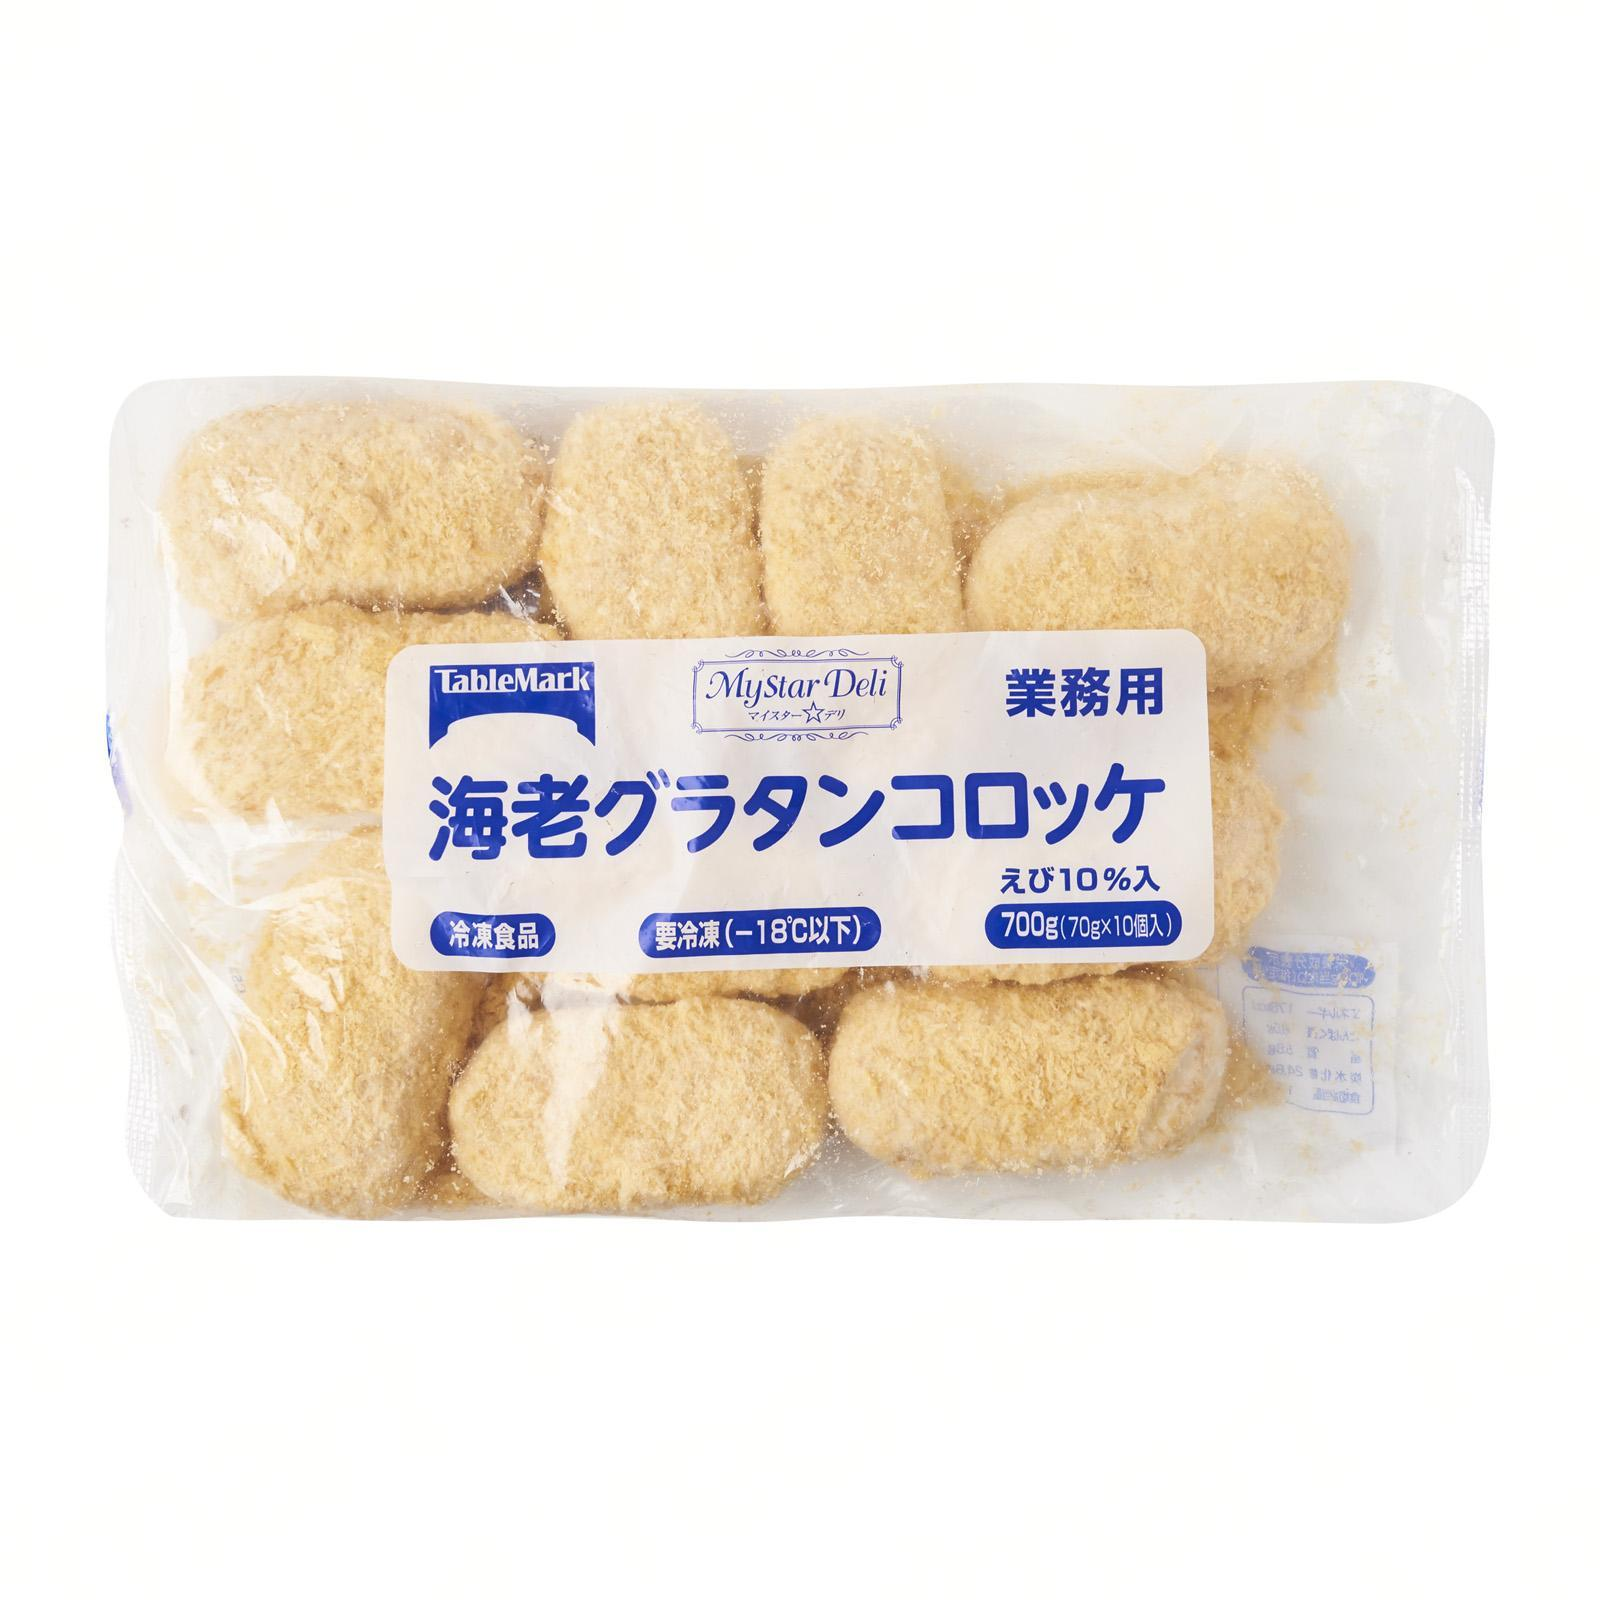 Tablemark Ebi Prawn Cream Croquette - Frozen - Jetro Special By Redmart.